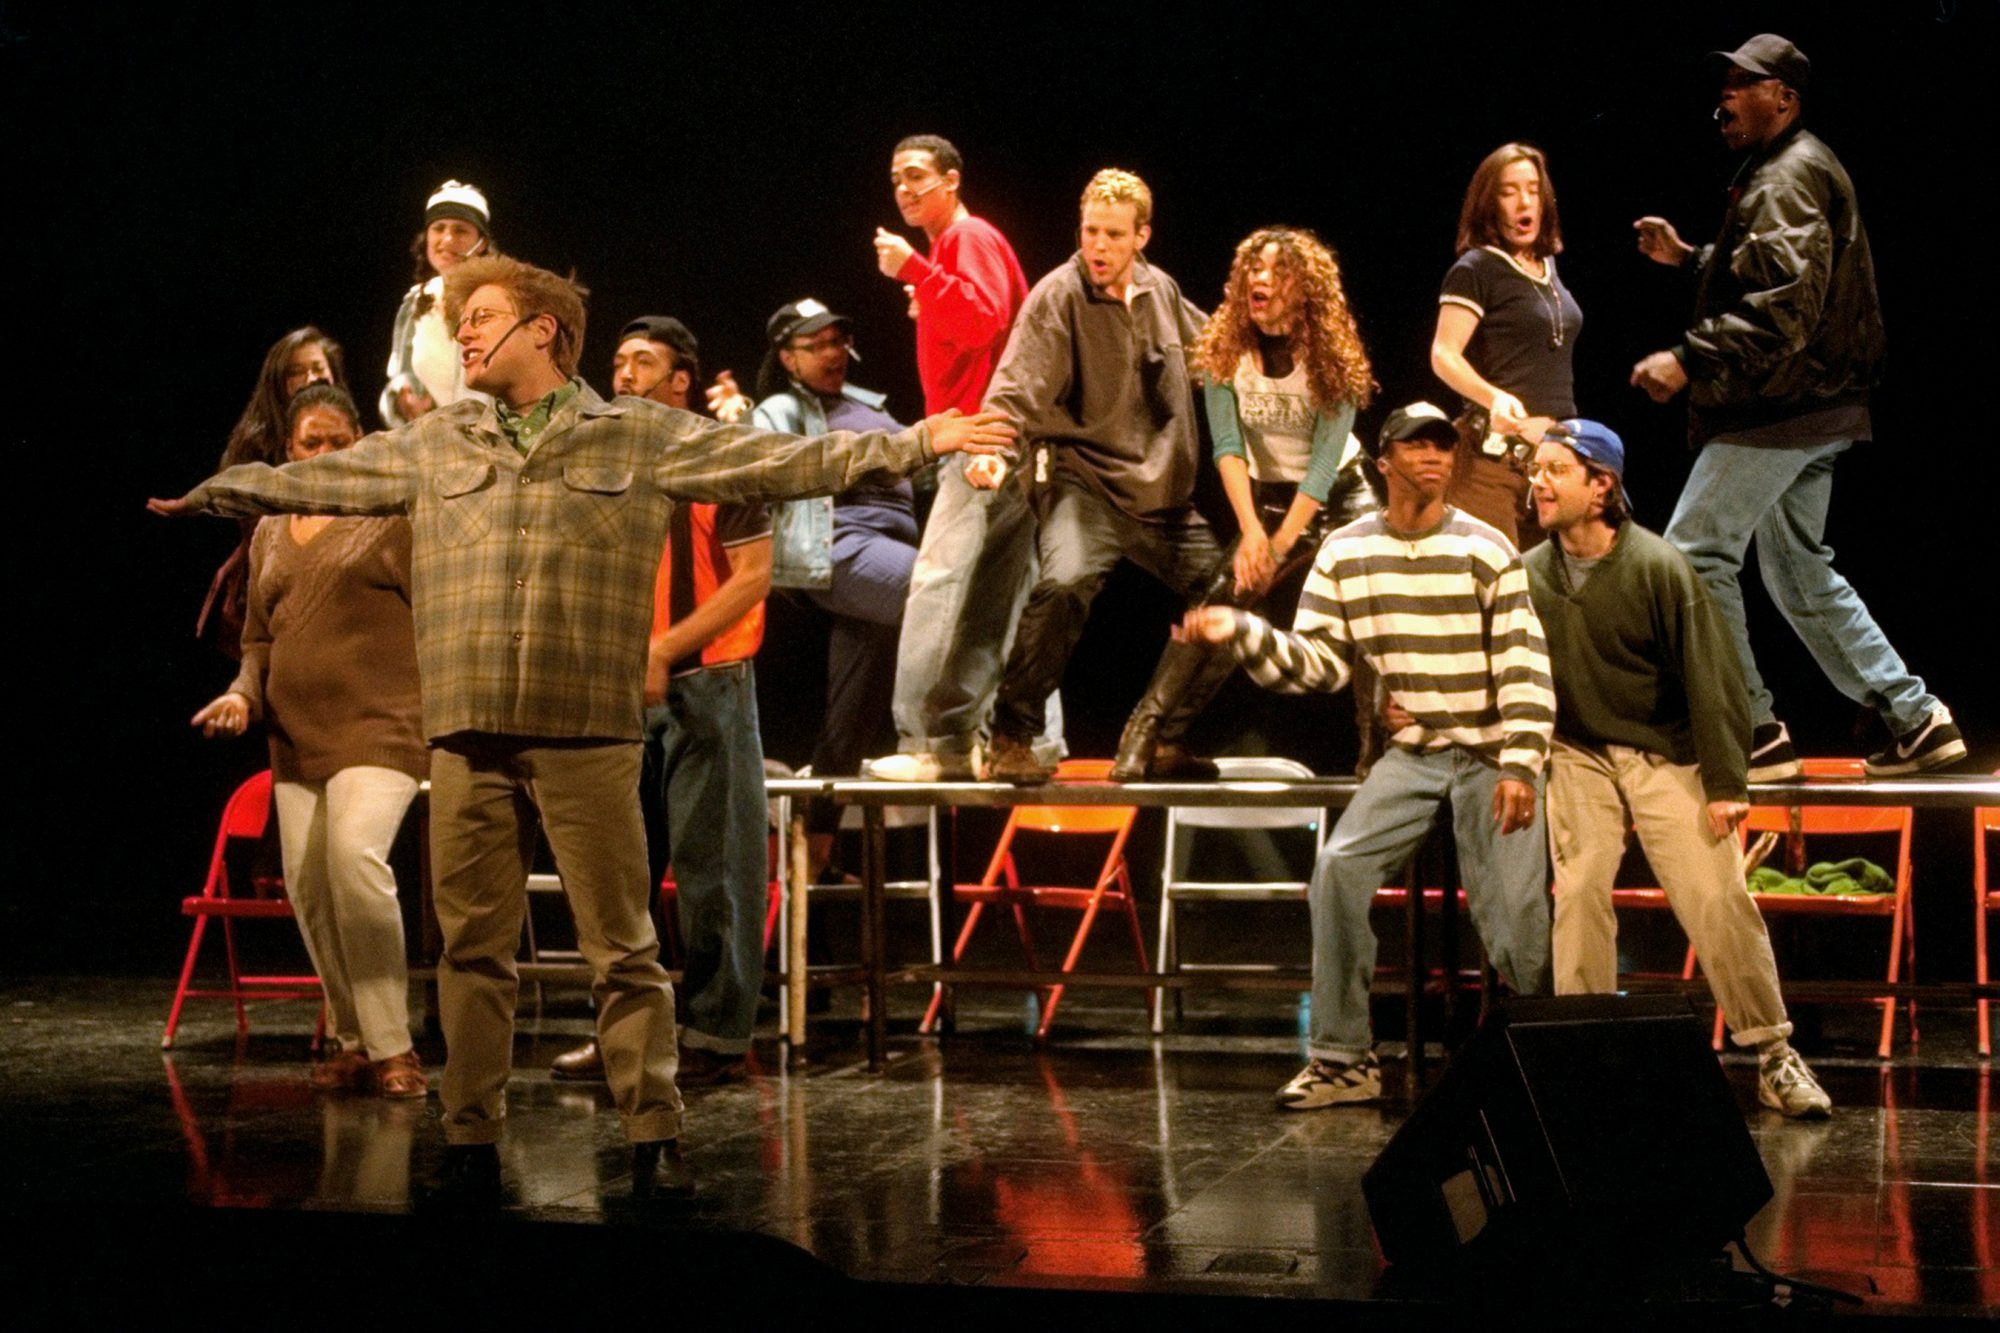 Cast of Rent rehearsing for the Tony Awards at the Majestic